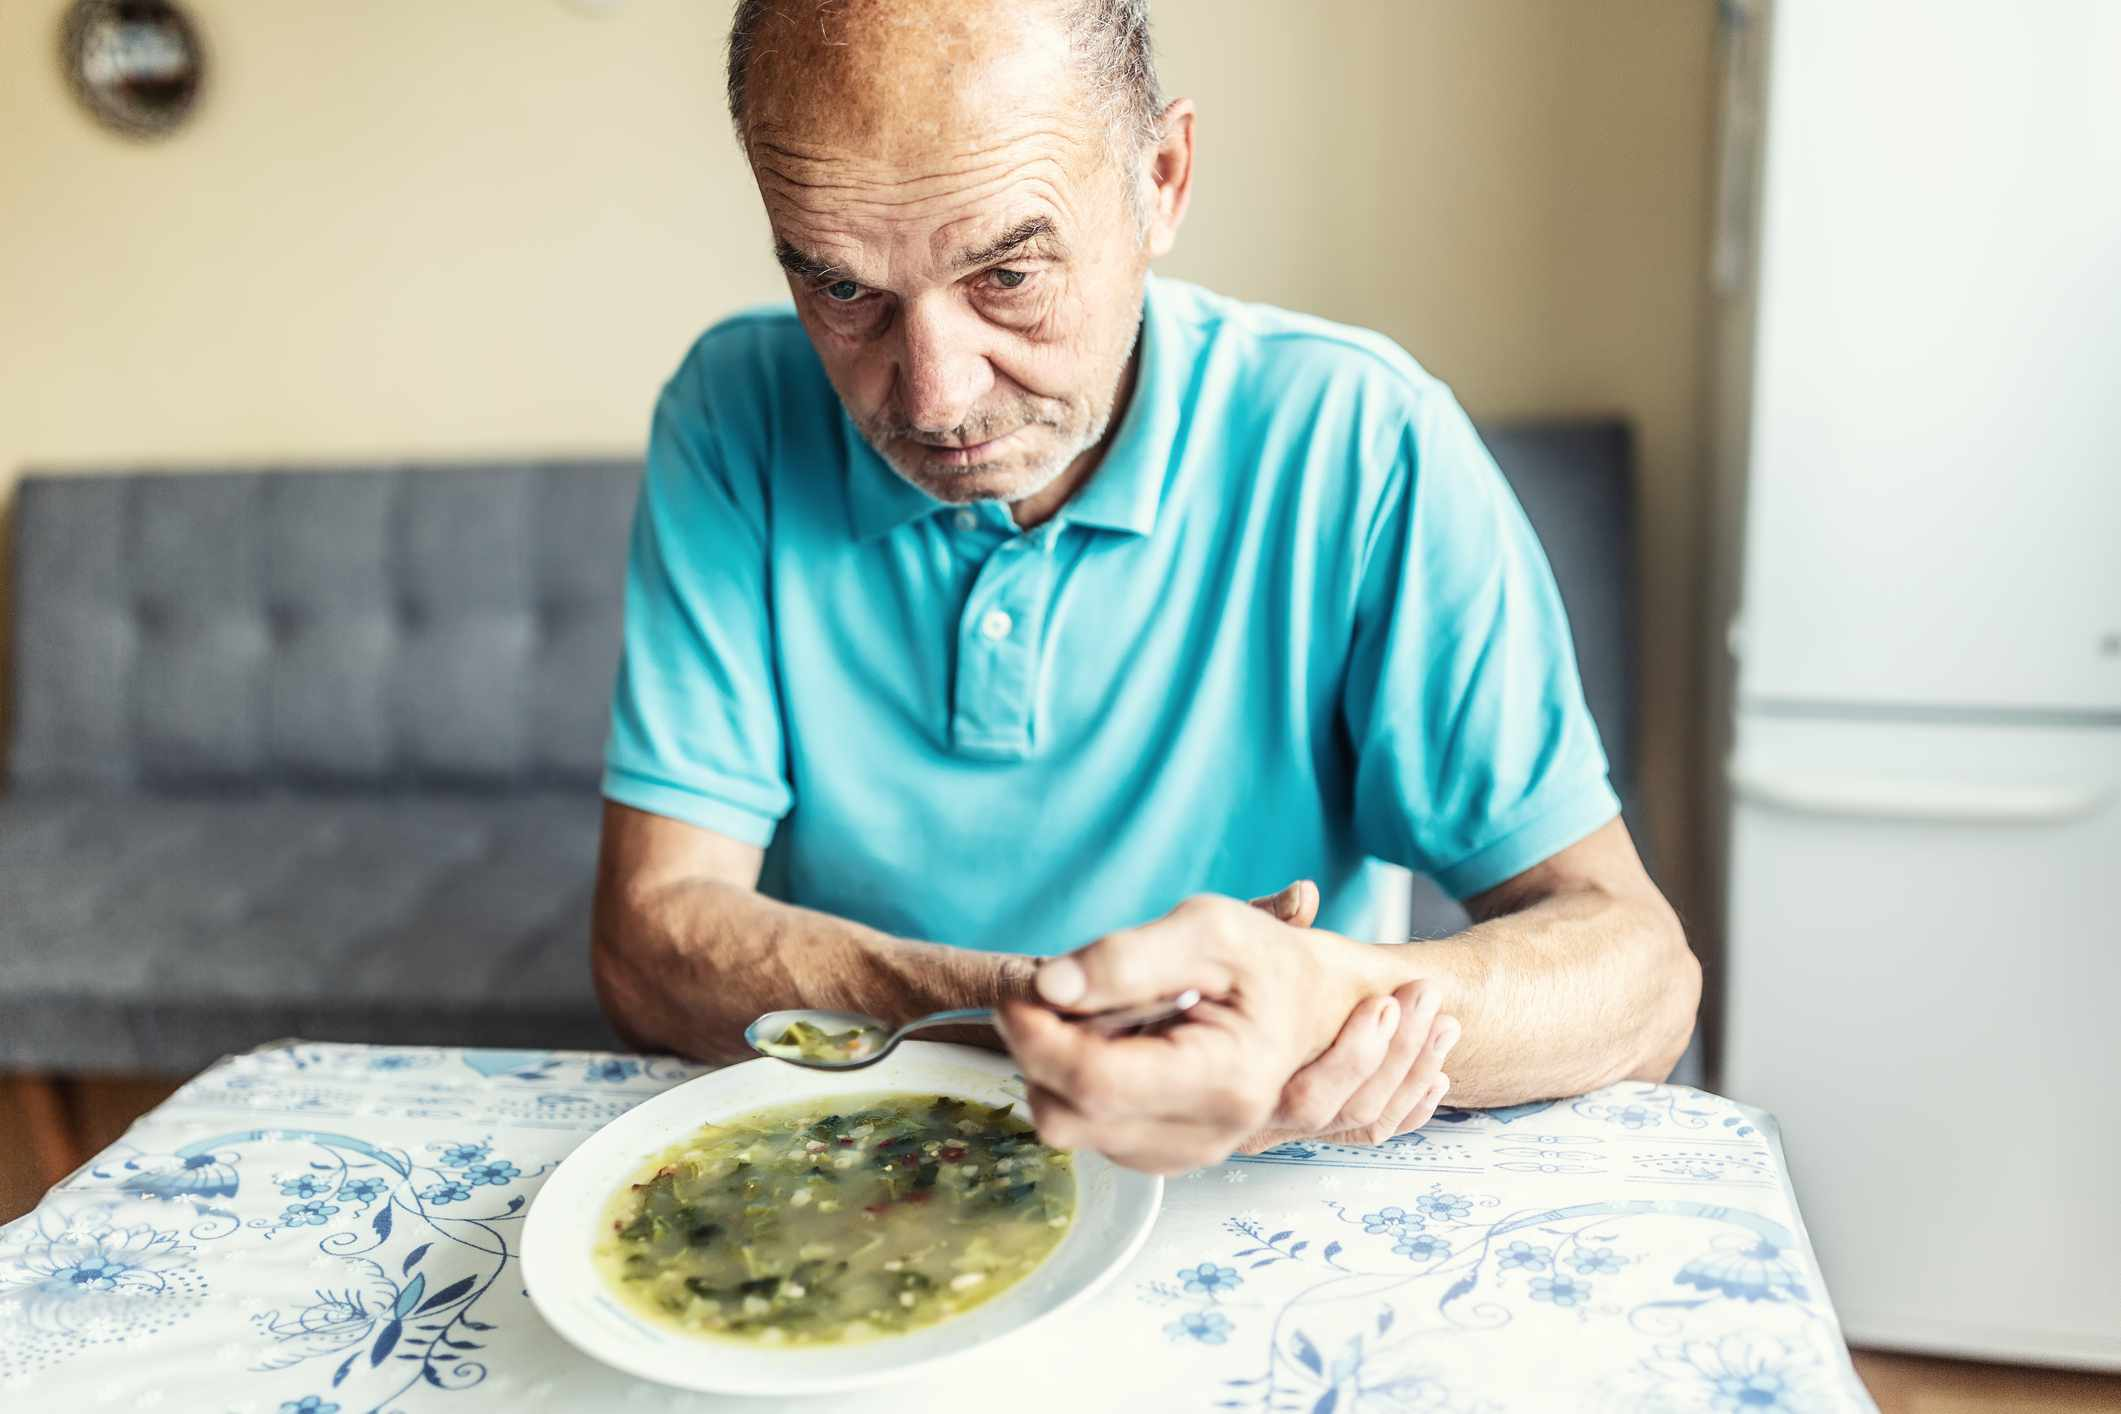 A senior man with Parkinson's disease holds his arm with a hand, trying to eat a soup